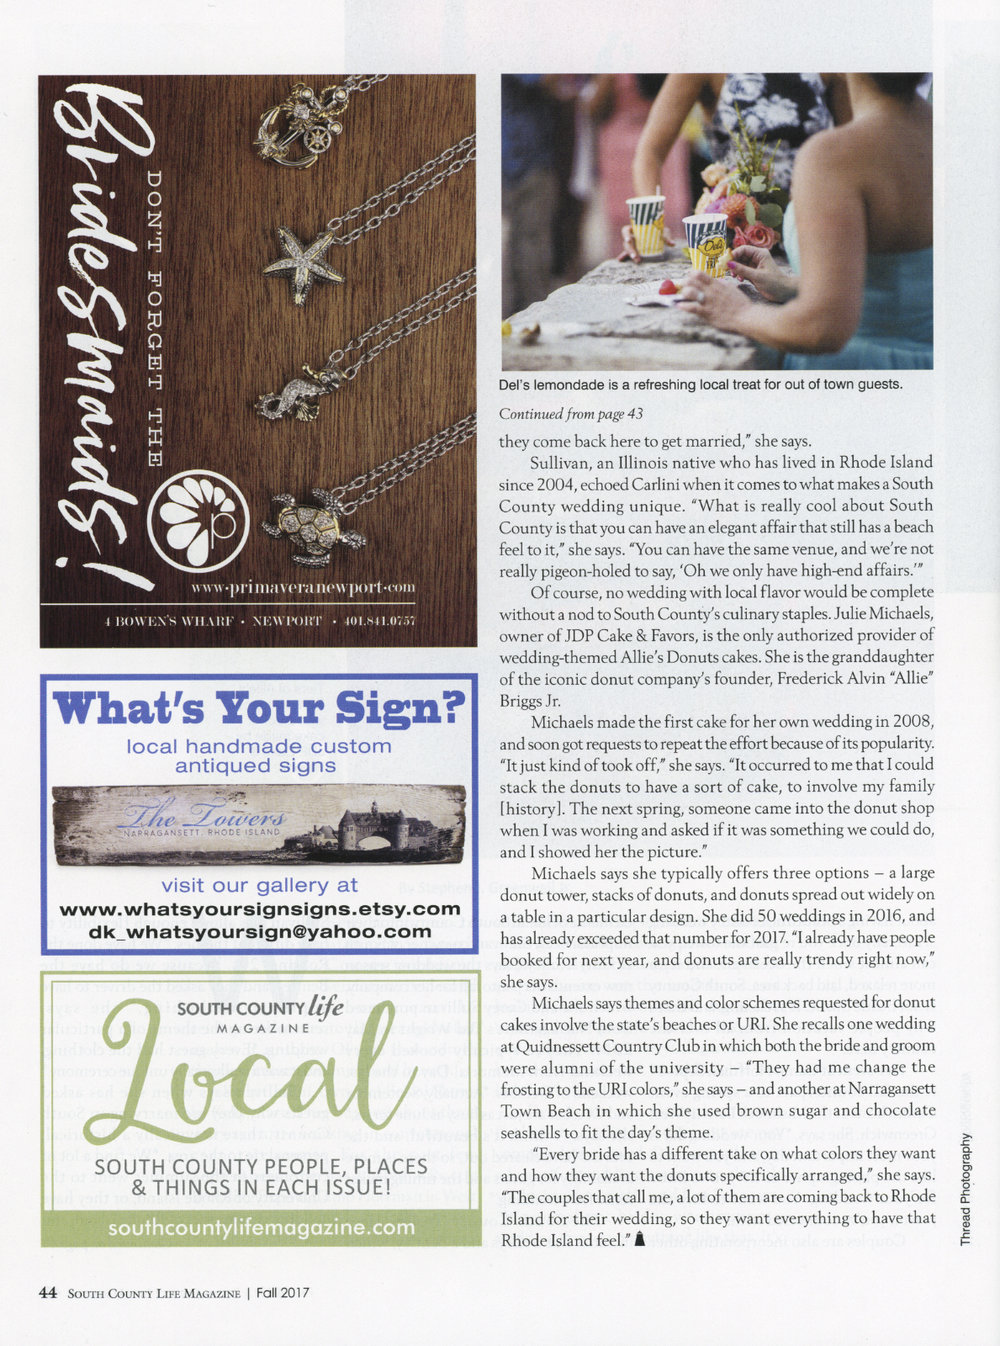 South County Life Magazine_Fall 2017 Issue_Thread Photography_Page 44.jpg